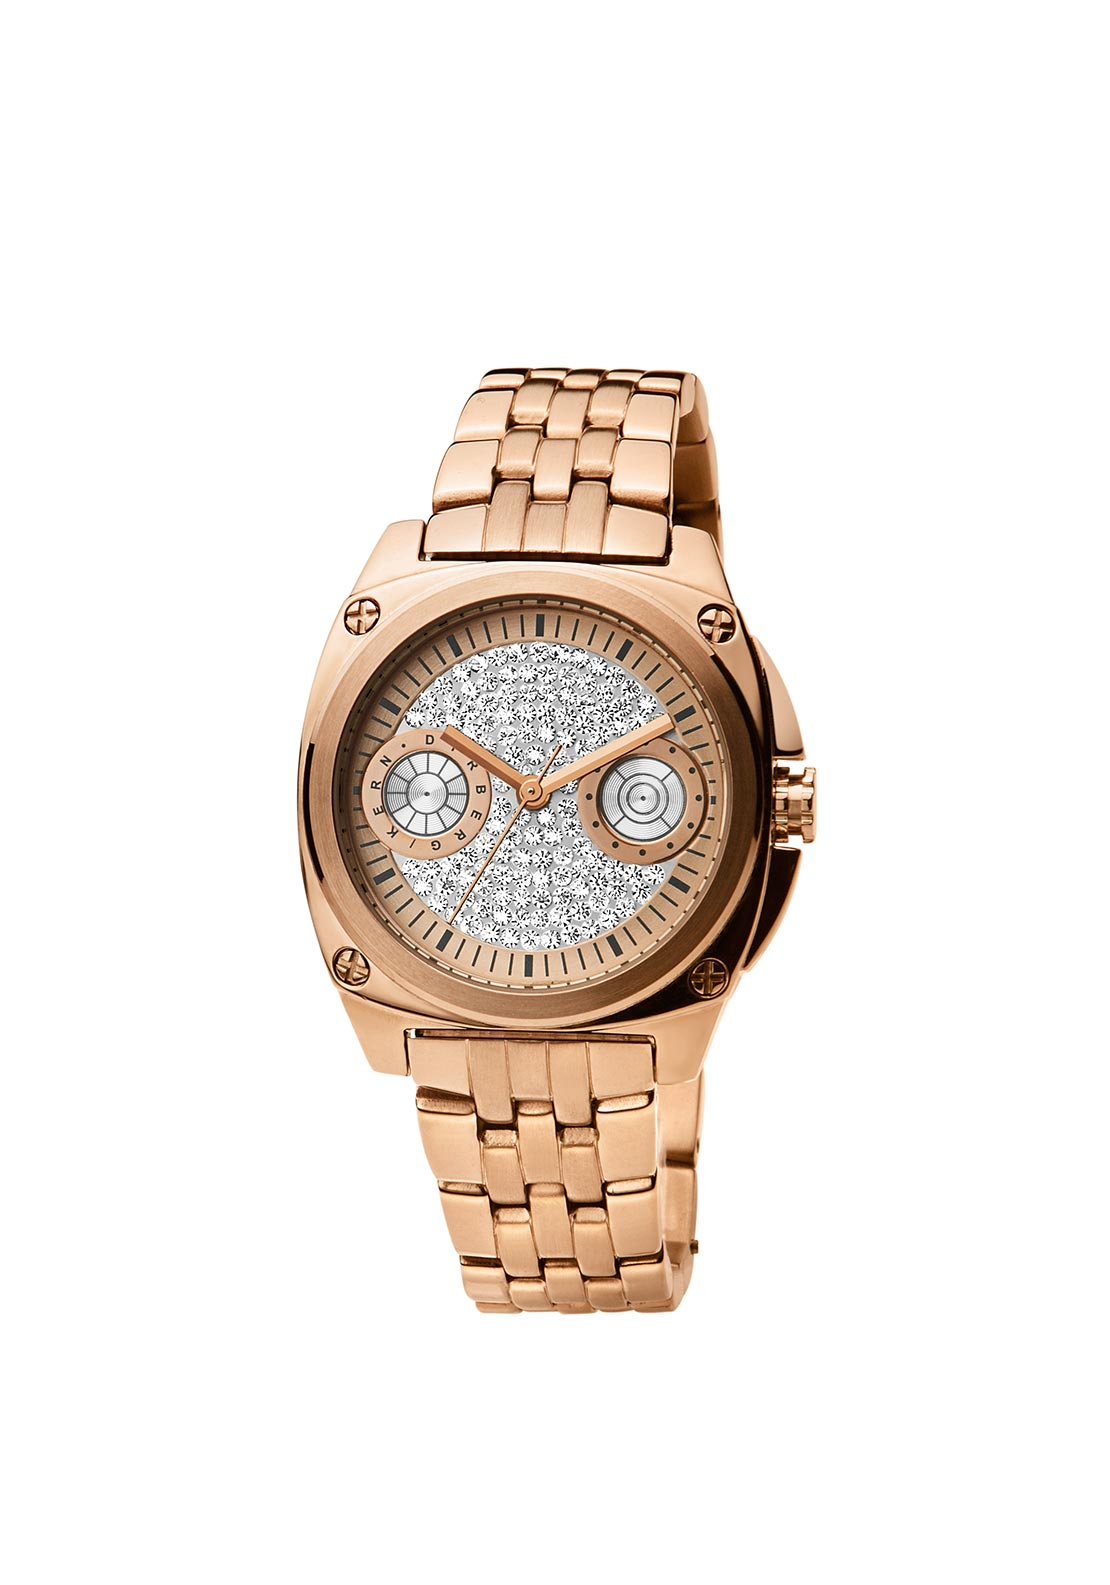 Dyrberg Kern Majesty SMC Watch, Rose Gold